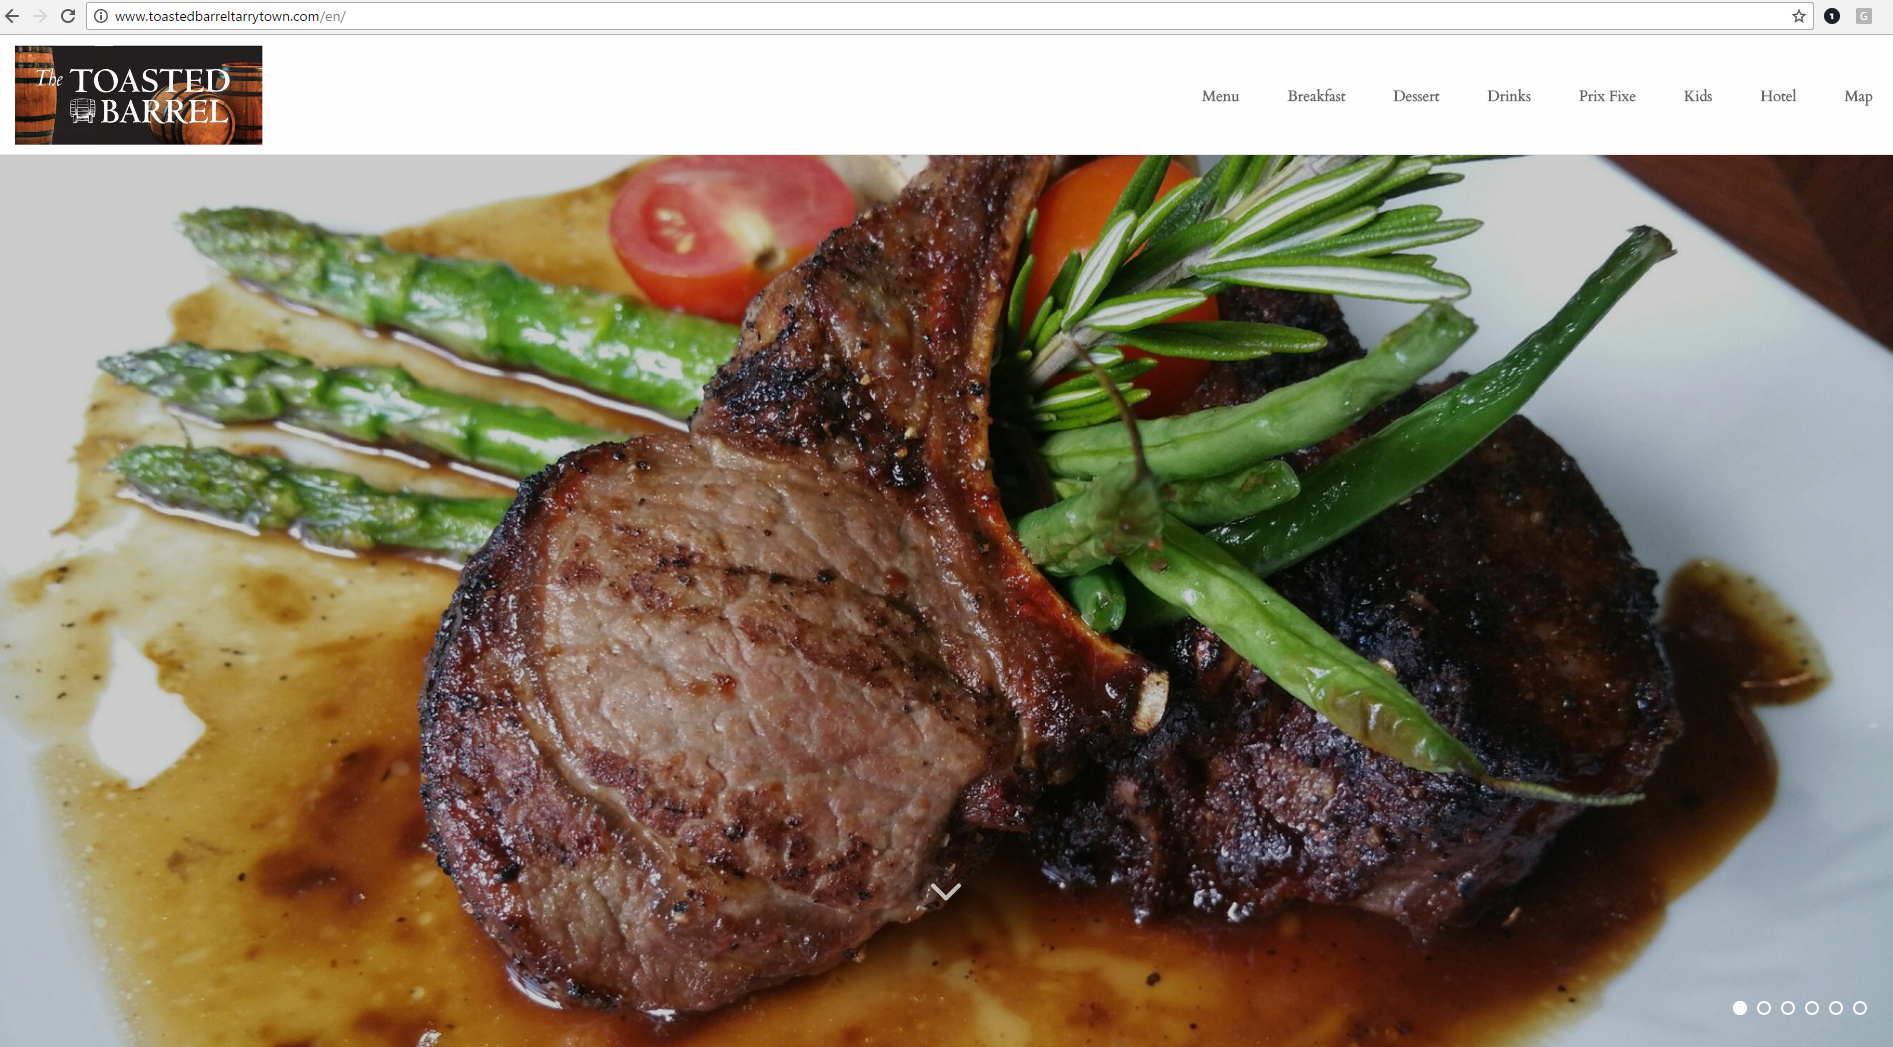 Toasted Barrel, the Sheraton Tarrytown Hotel's Restaurant Homepage